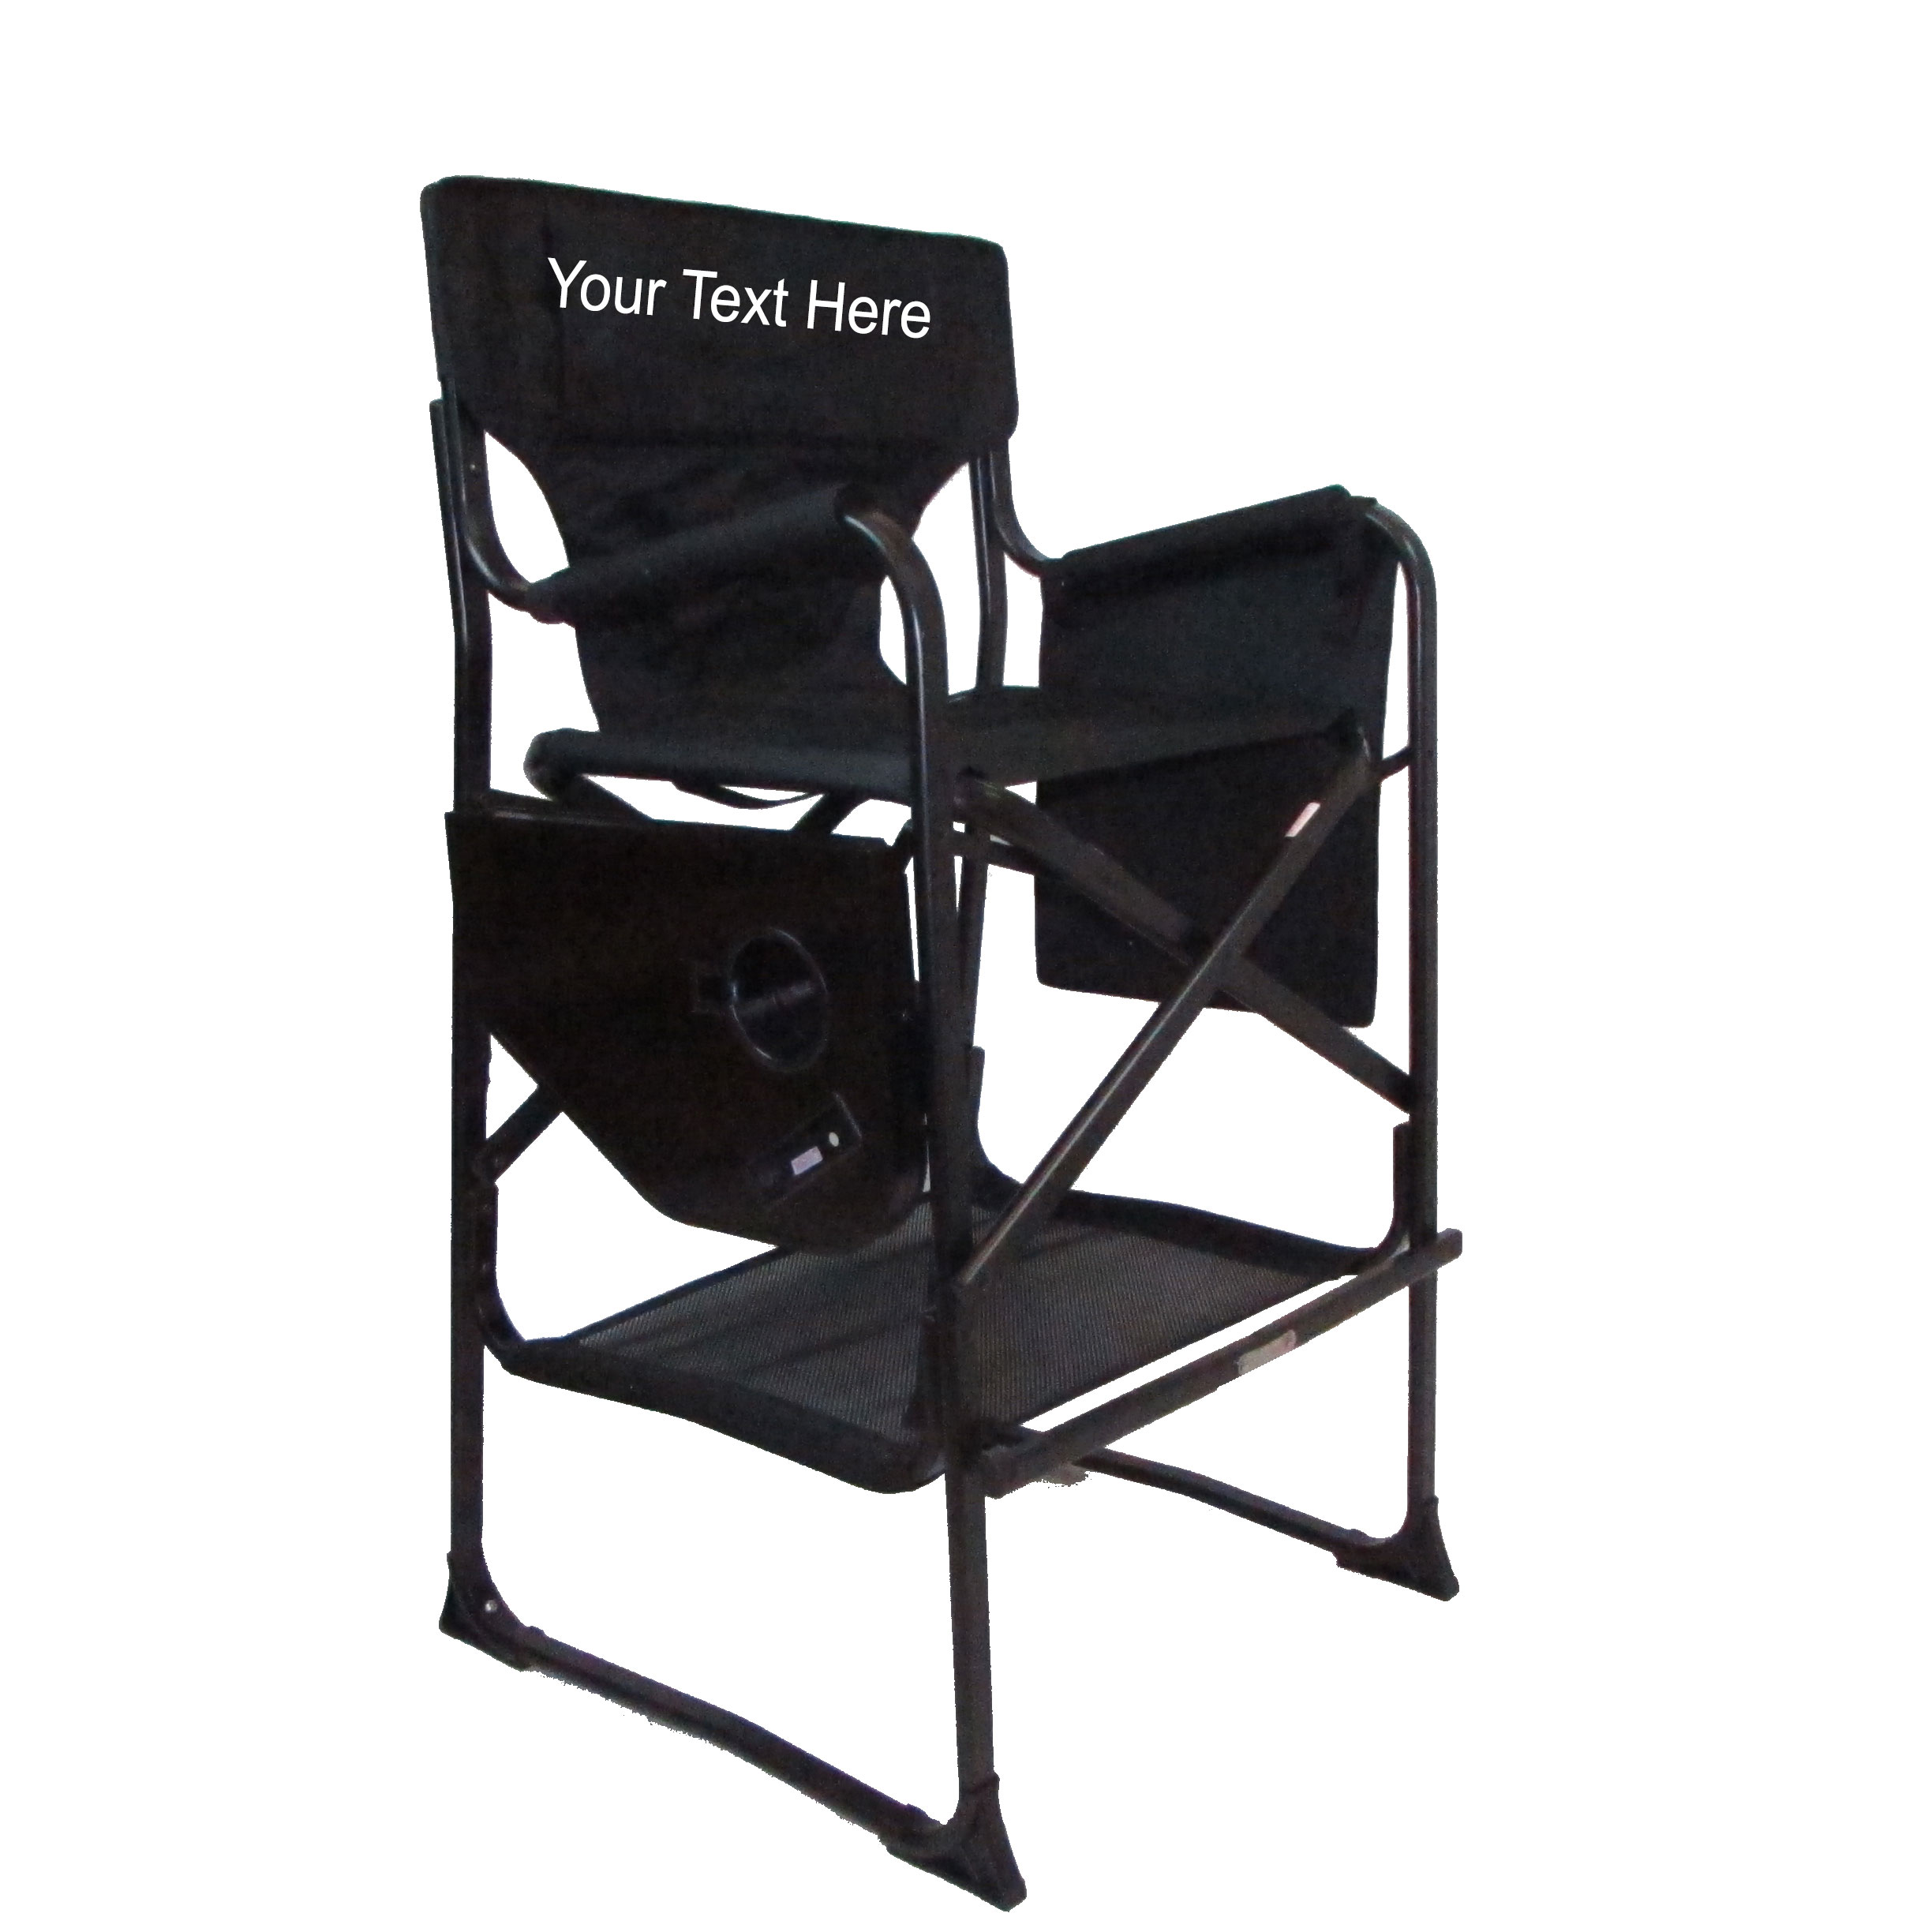 EMBROIDERED Personalized Professional Tall Directors Chair By Pacific Imports